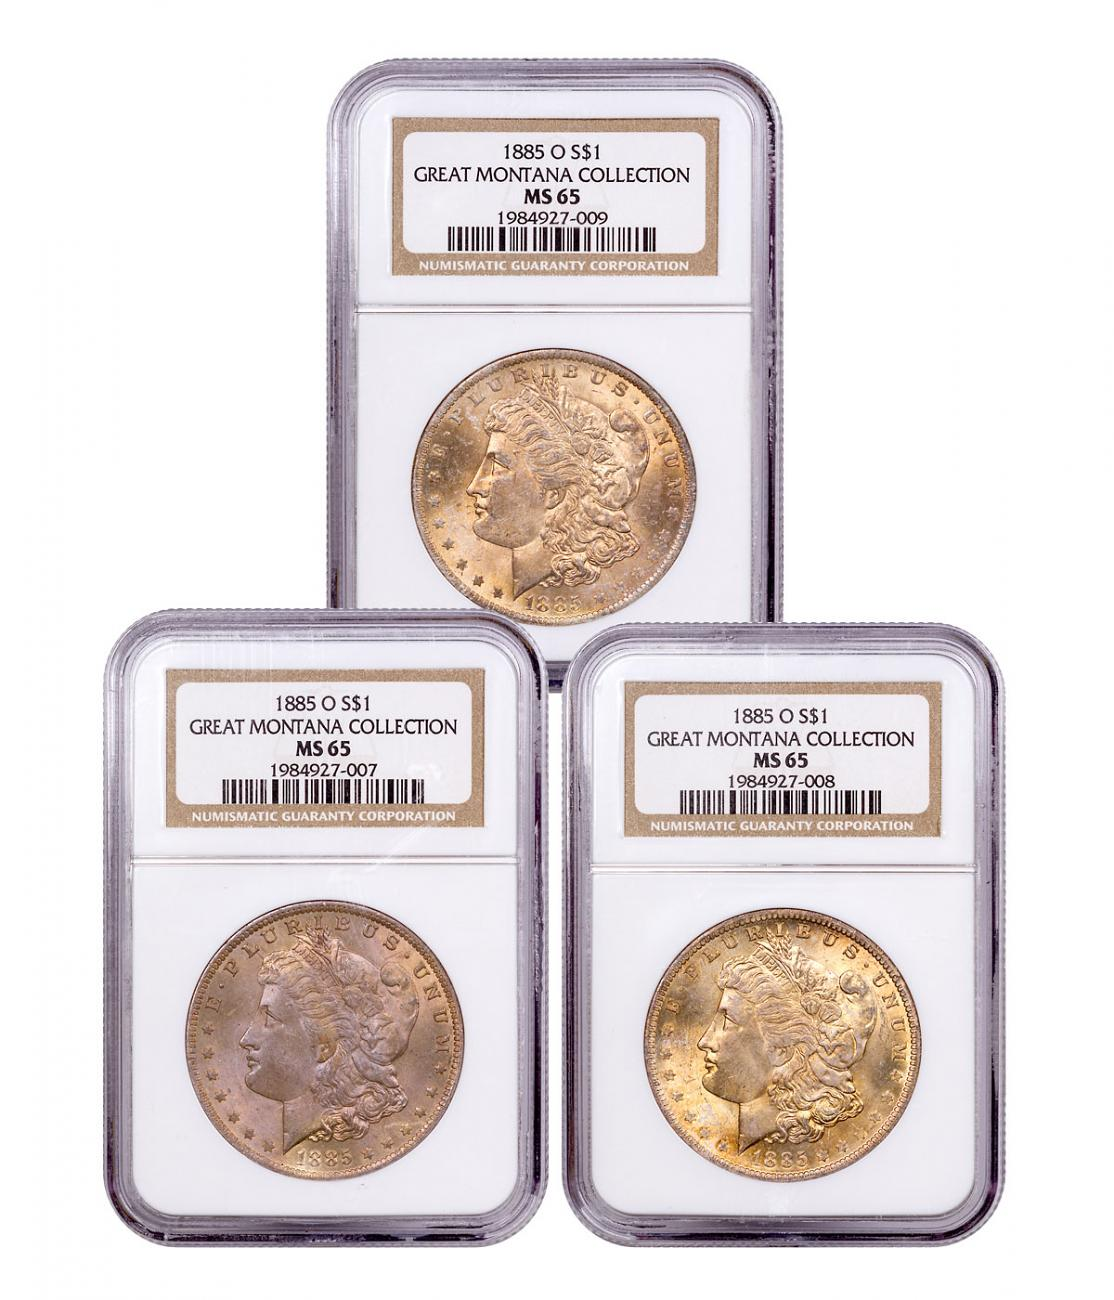 3-Coin Set - 1885-O Morgan Silver Dollar From the Great Montana Collection NGC MS65 Toned CPCR 7009